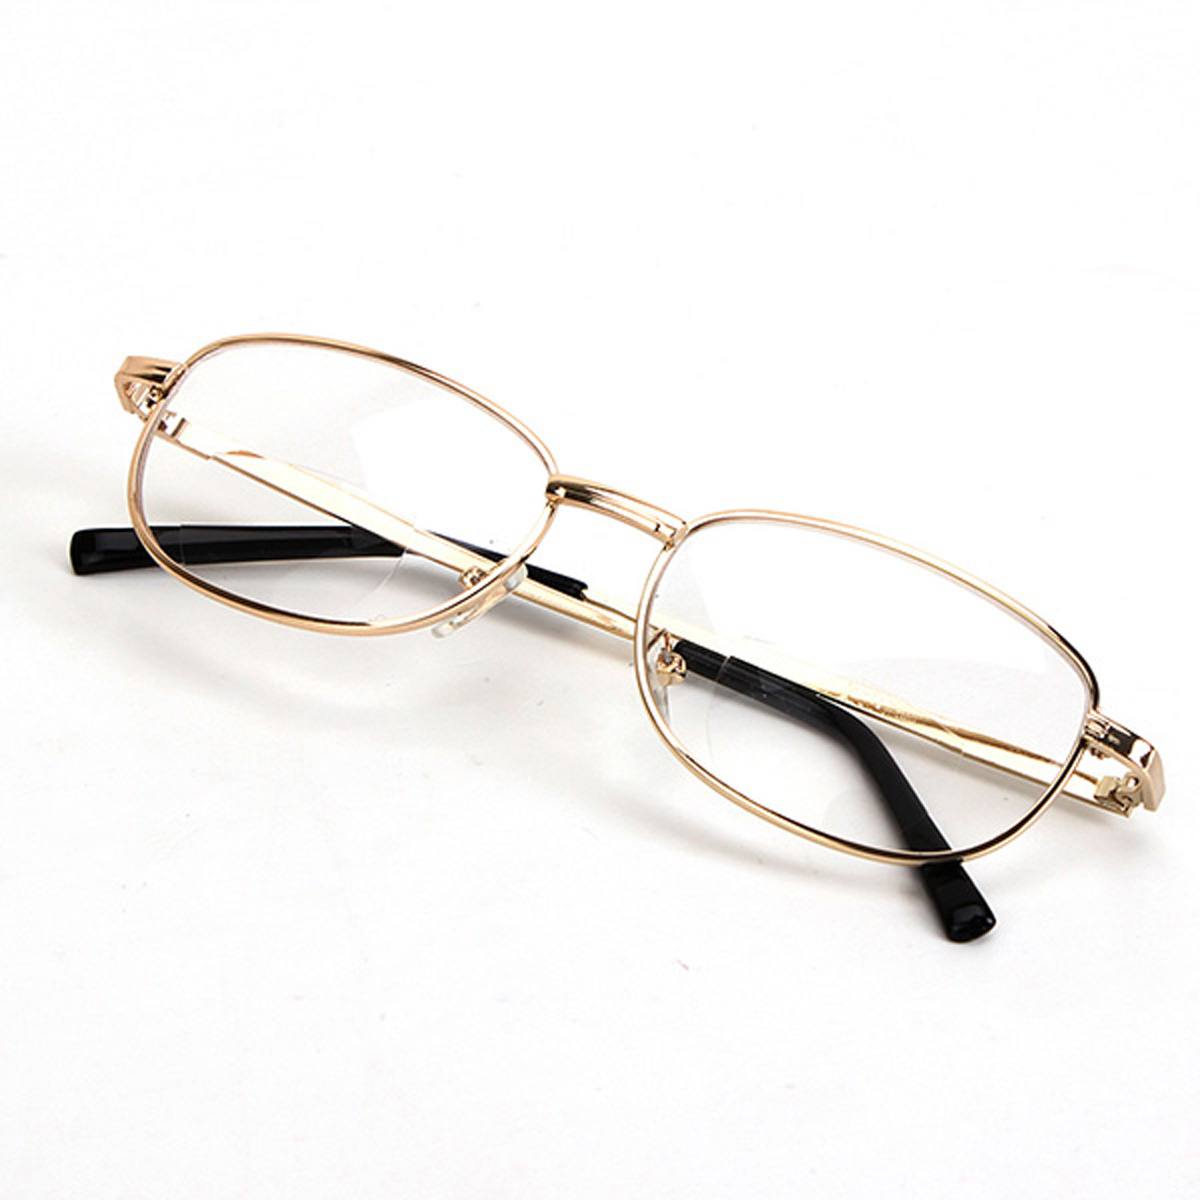 Gold Frame Reading Glasses : Fashion Bifocal Lens Rimmed Mens Reading Glasses Gold ...